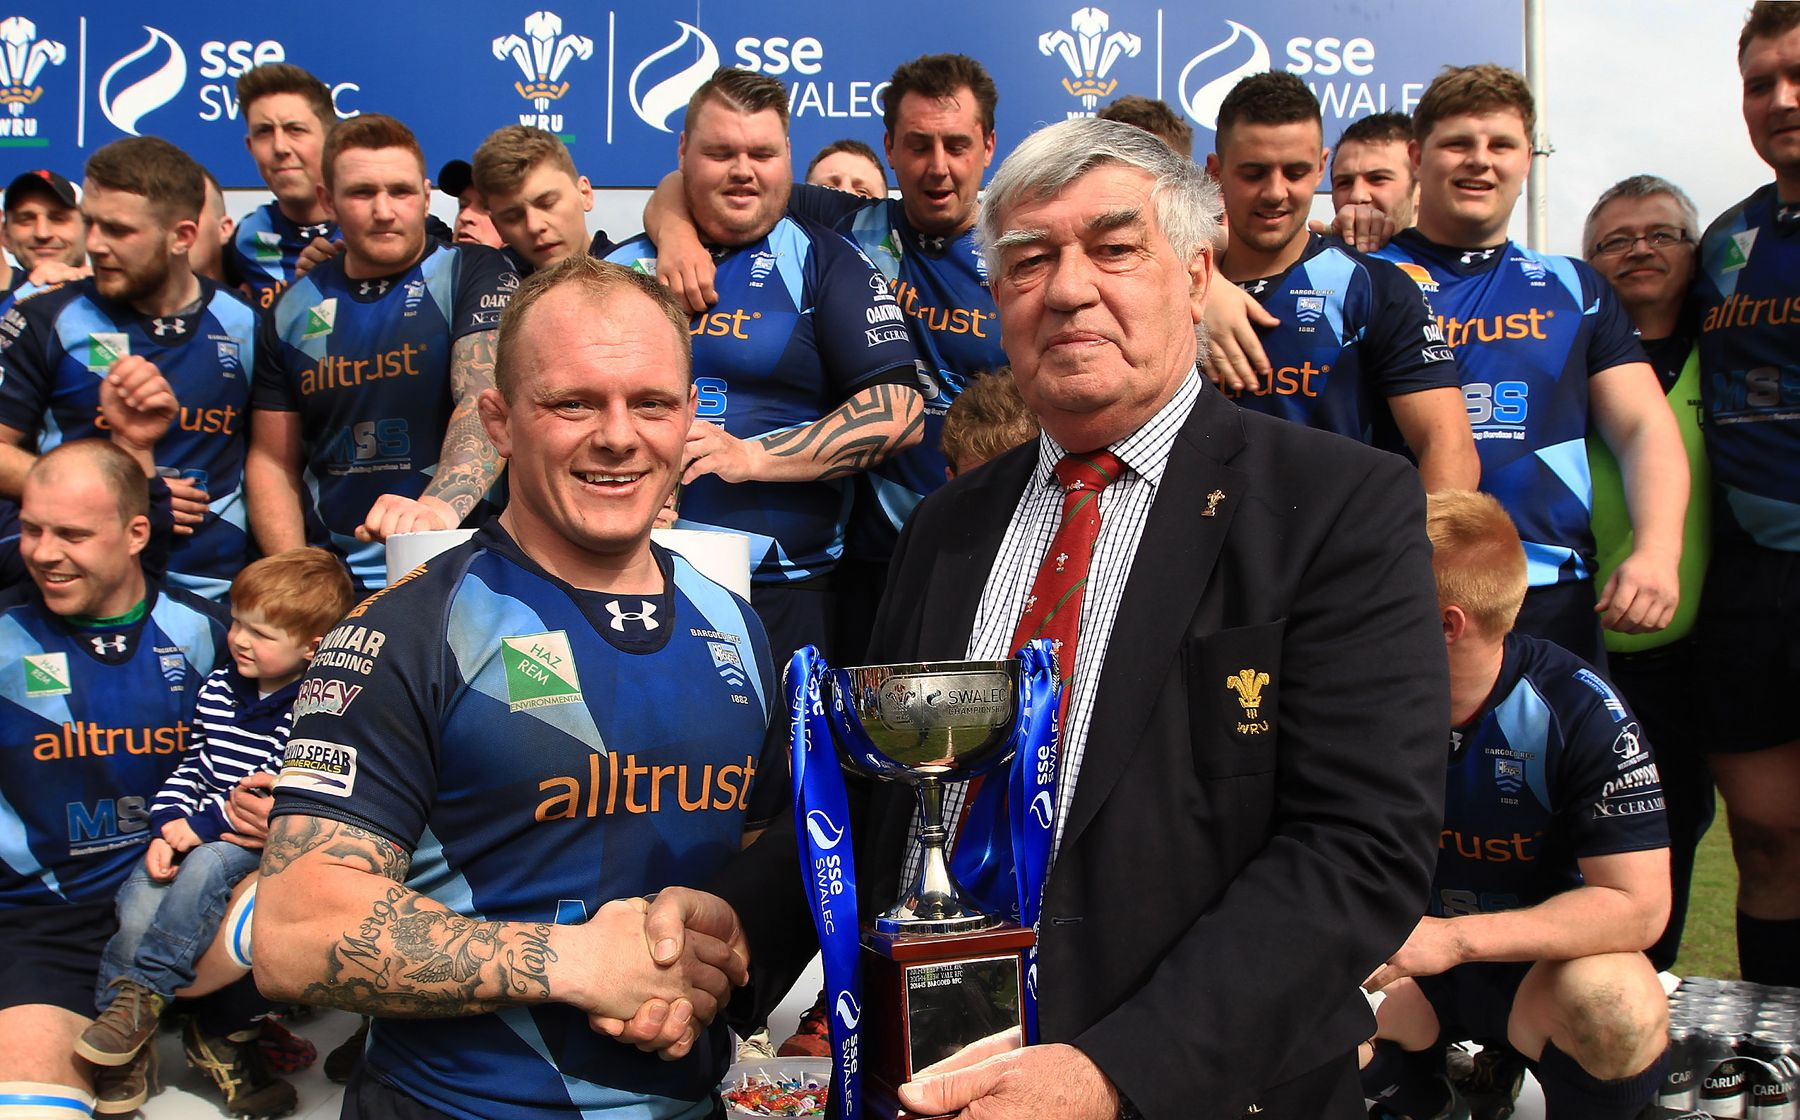 SSE SWALEC Championship clubs ready for battle royale